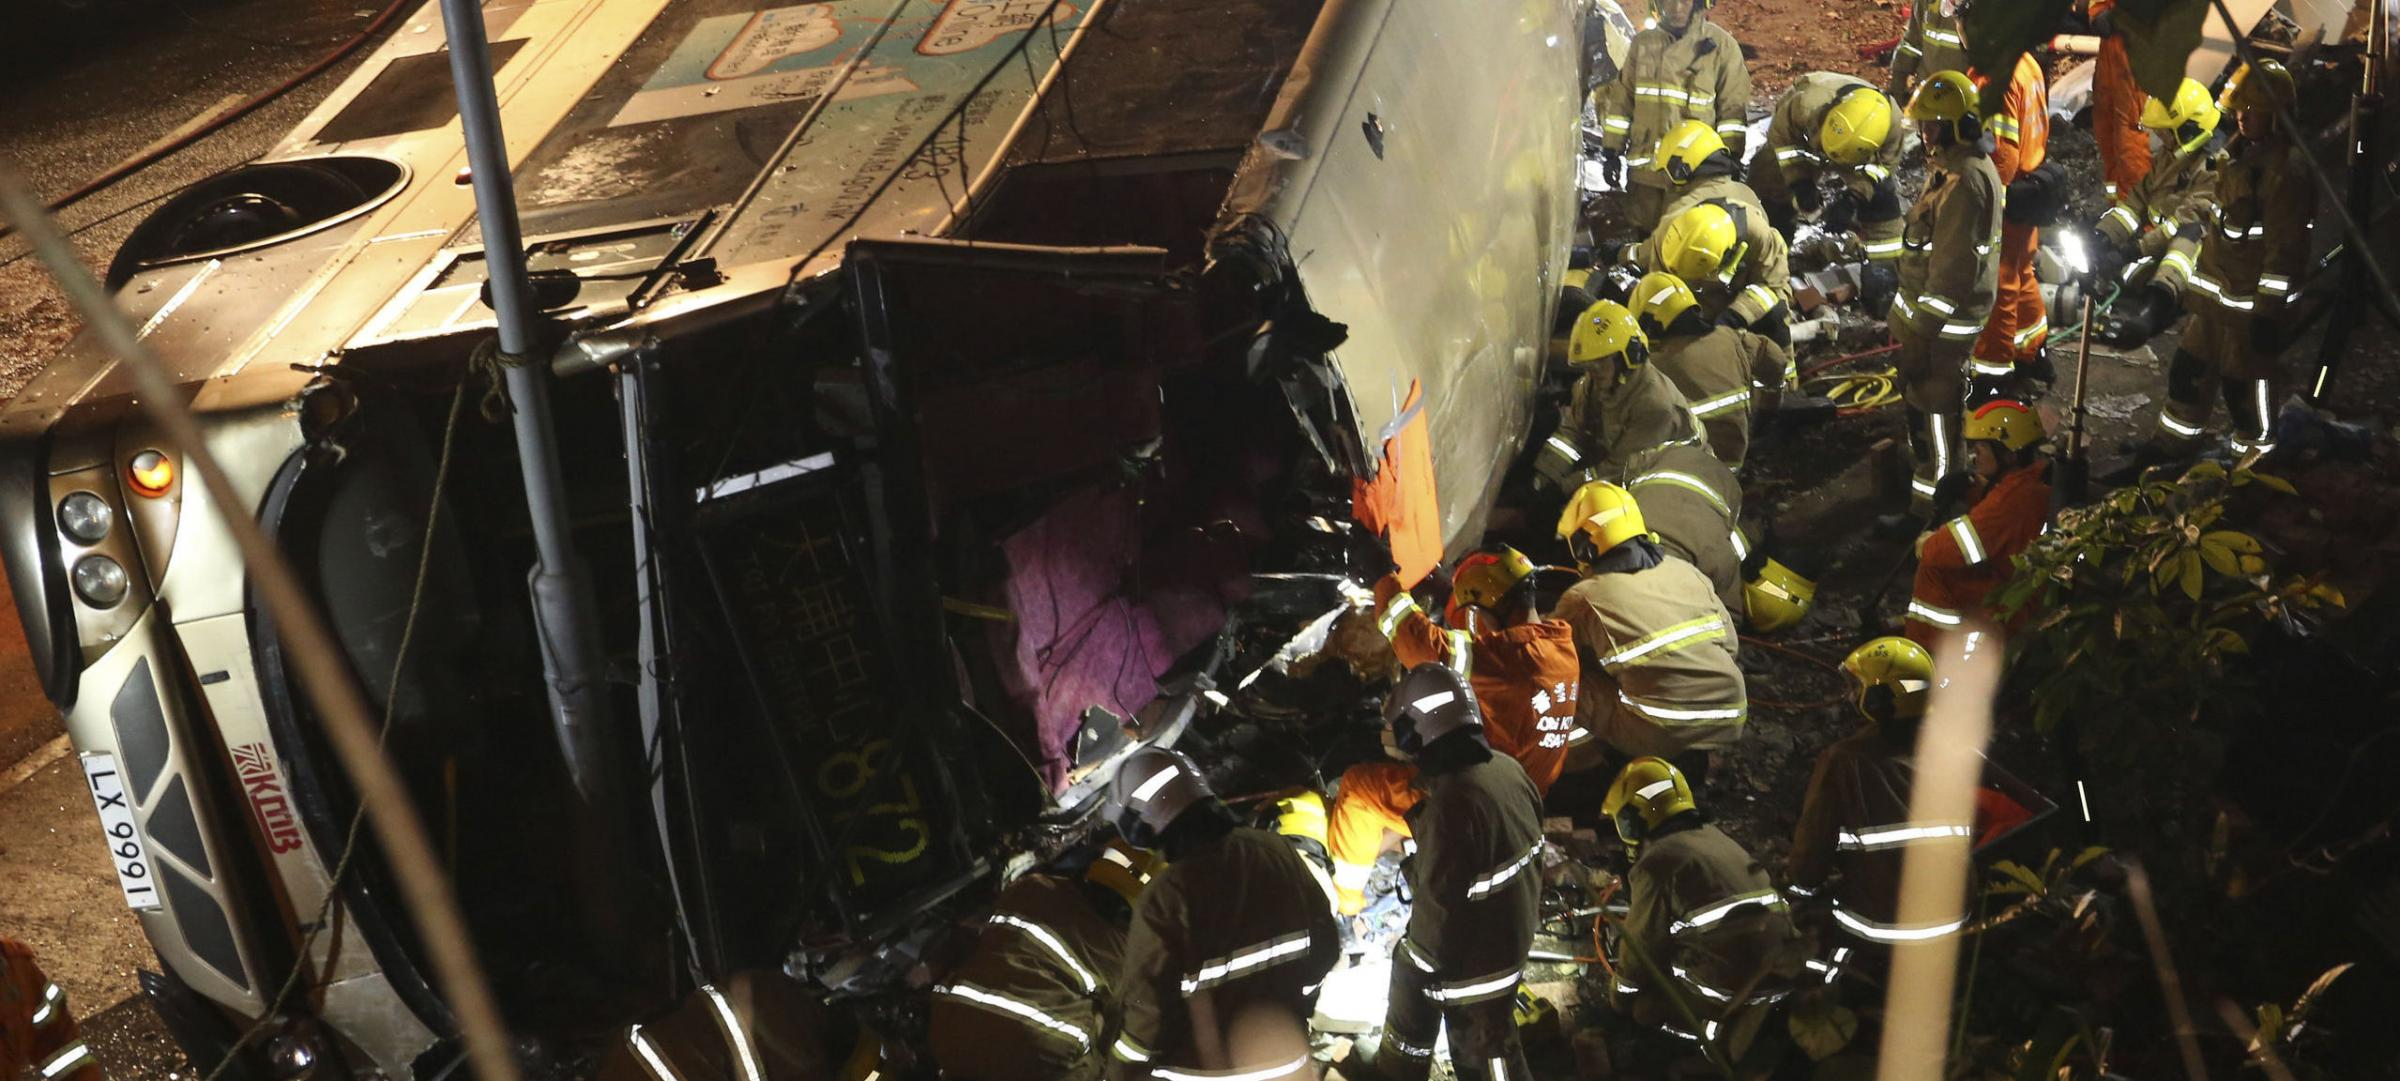 A double-decker bus lost control and crashed in a Hong Kong suburb on Saturday evening. Photograph: AP